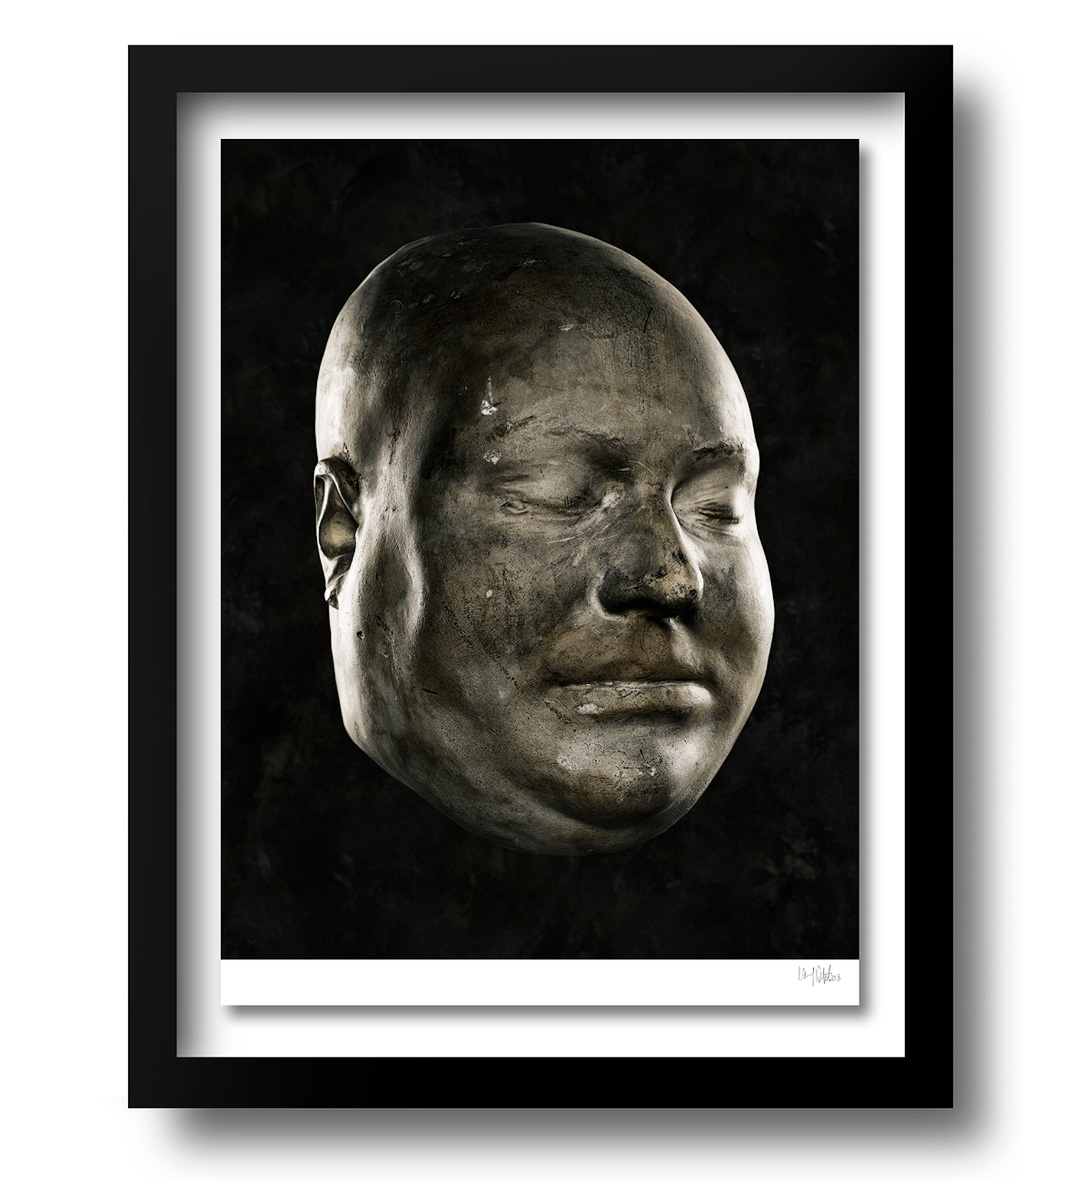 Death-Mask_Mary_Frame-kopiera